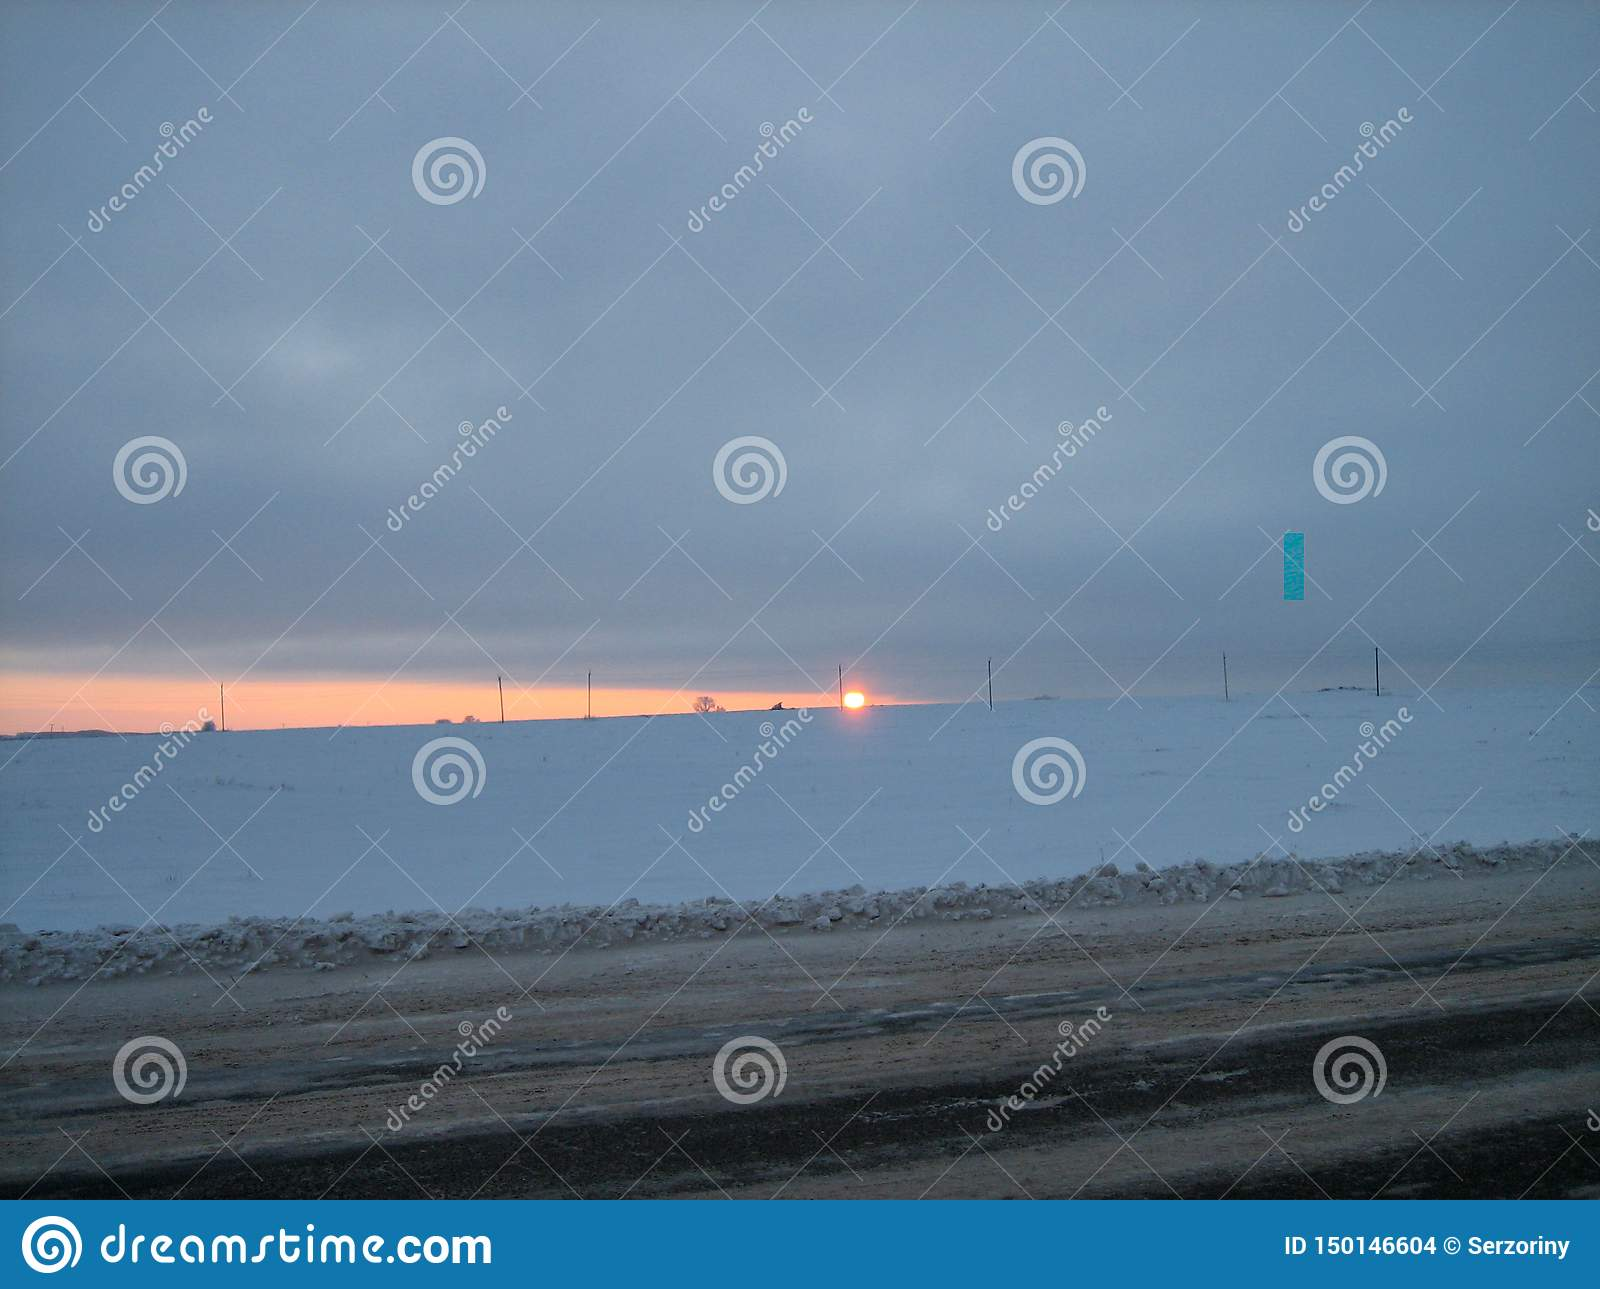 Snow-covered field along the road in the winter evening at sunset